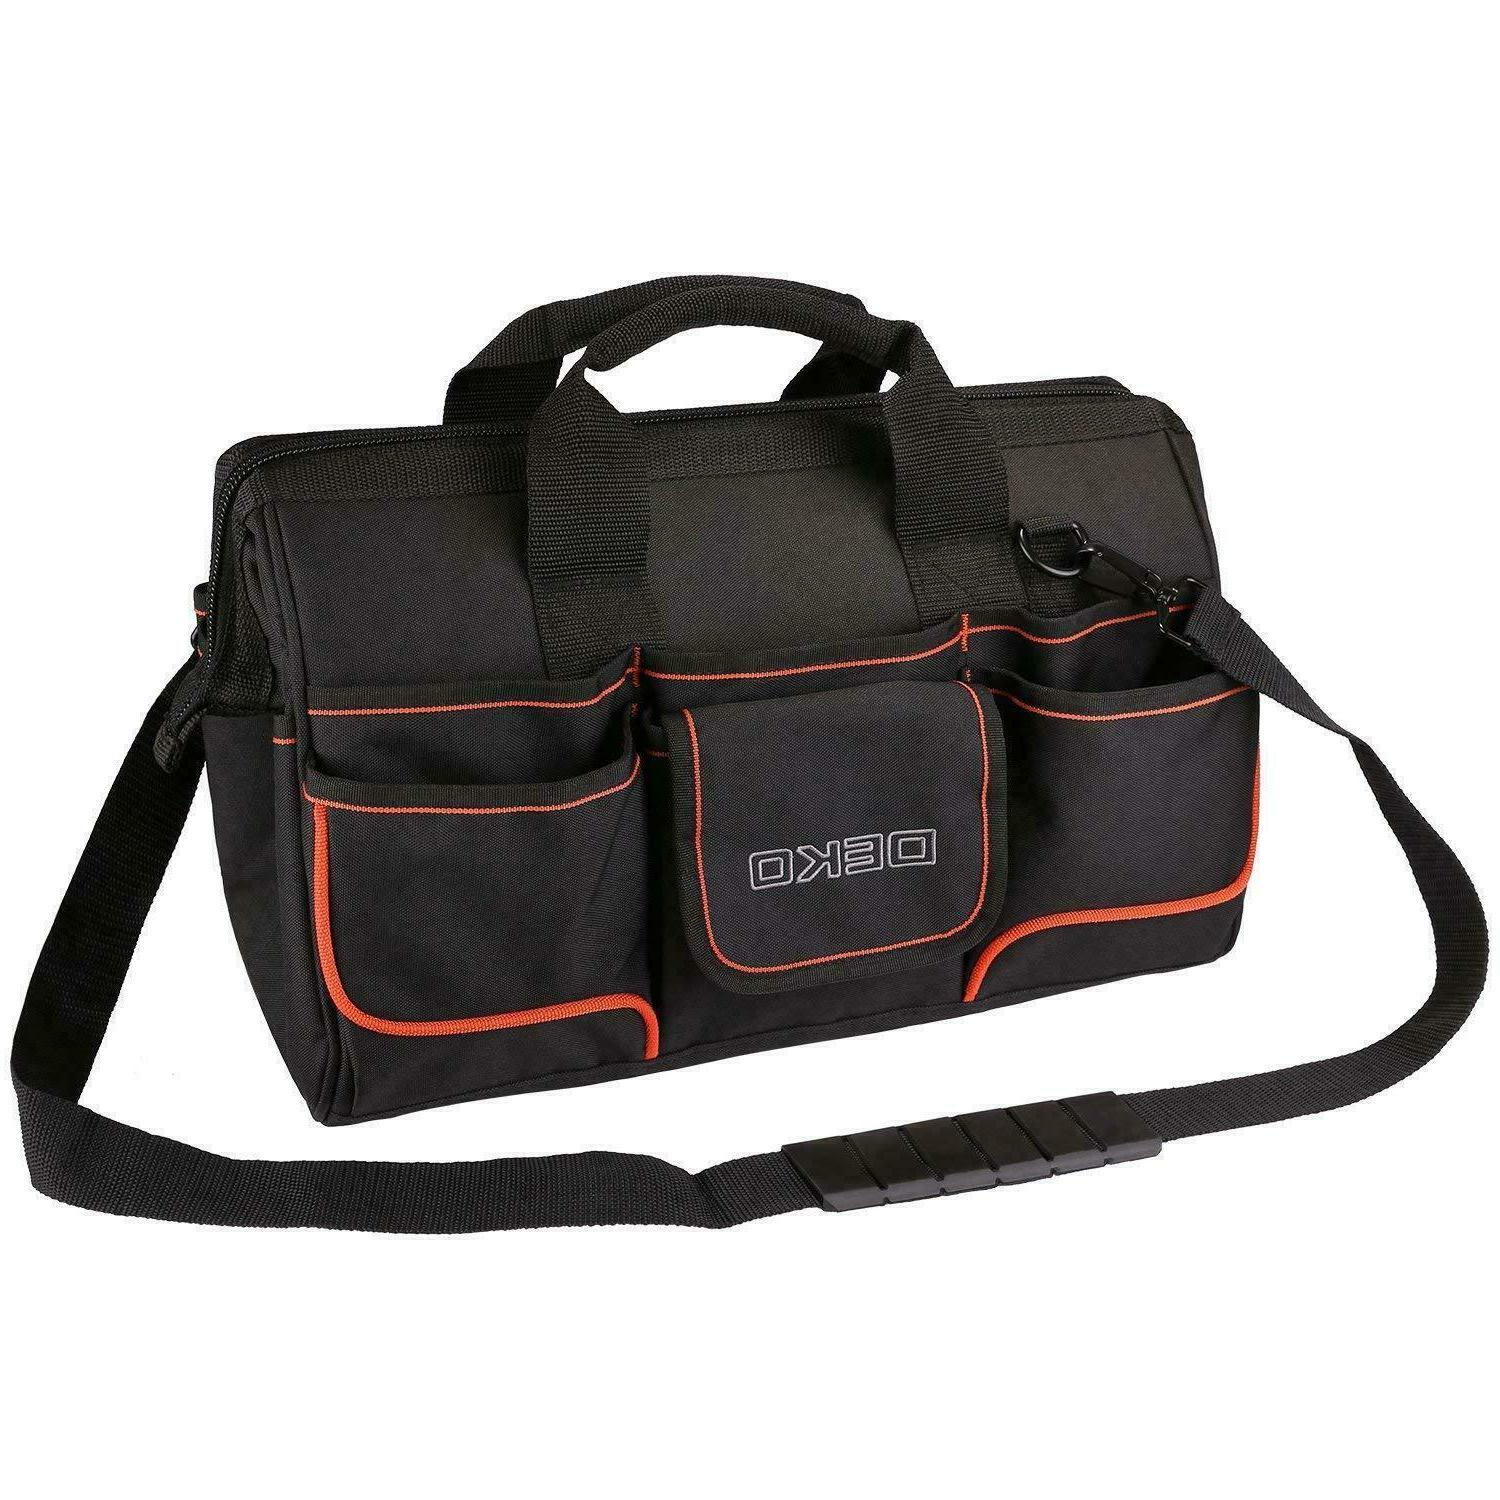 "DEKO Tool Bag 8.6"" Large Heavy Duty Proof"